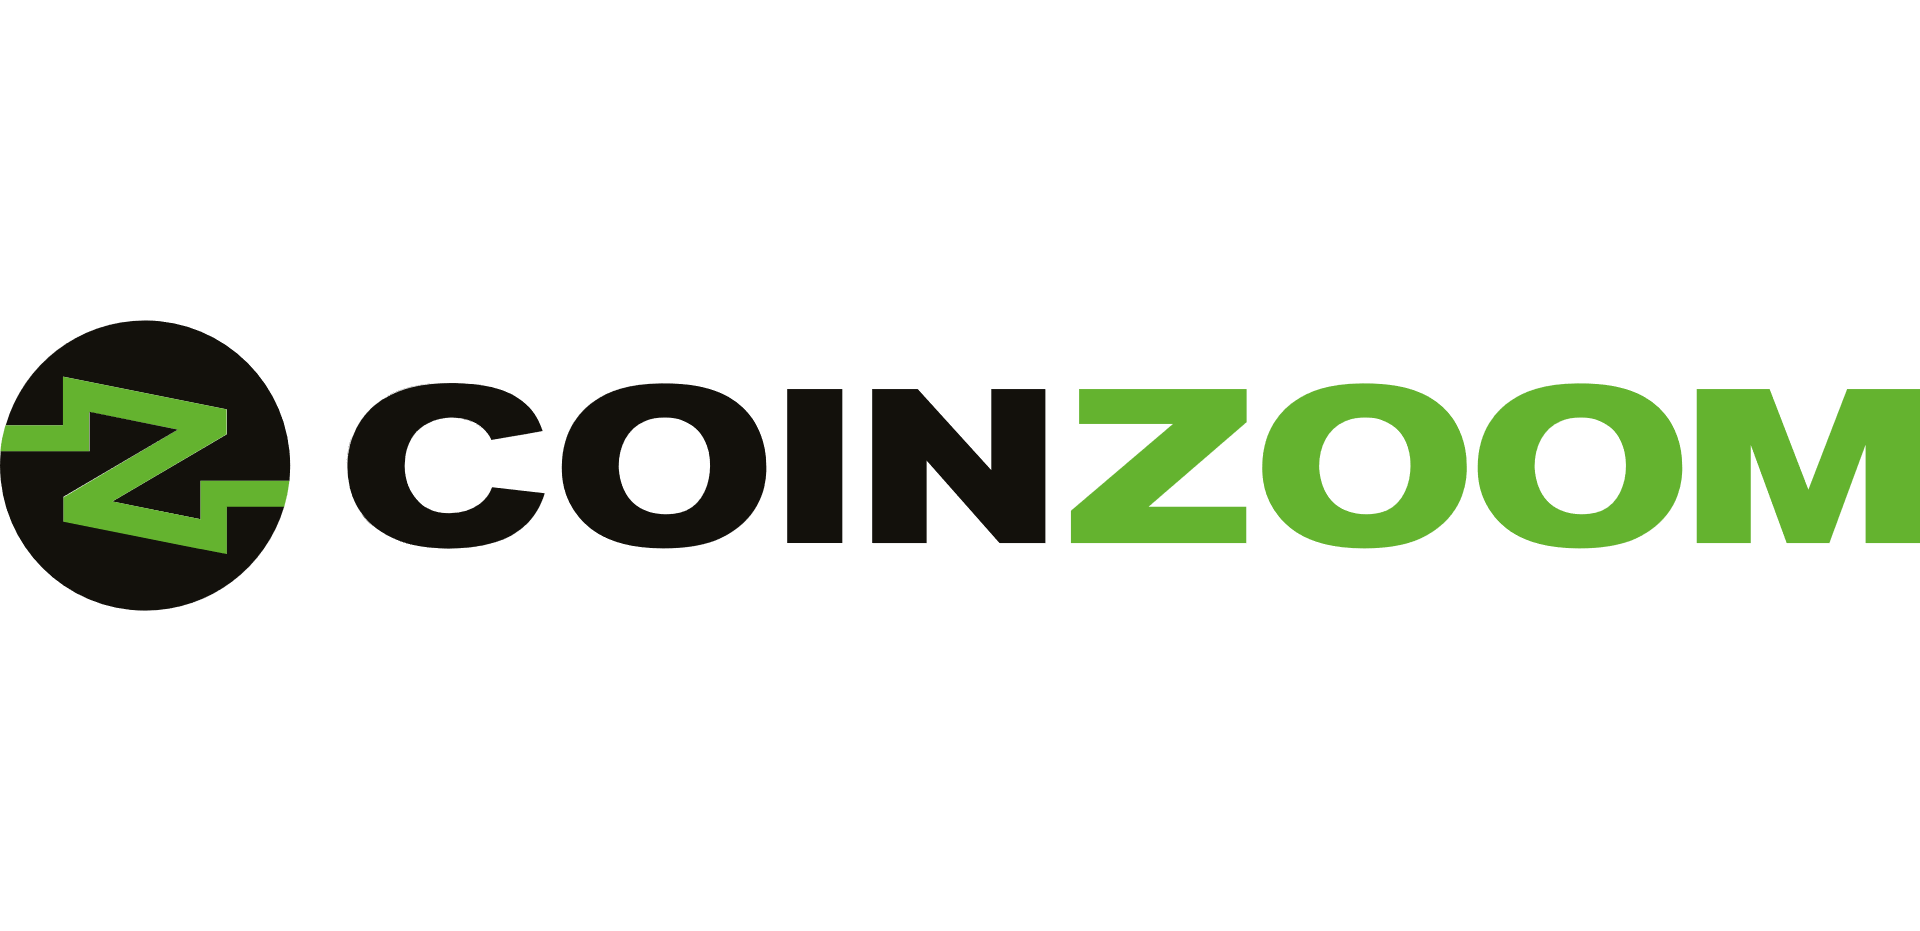 CoinZoom logo